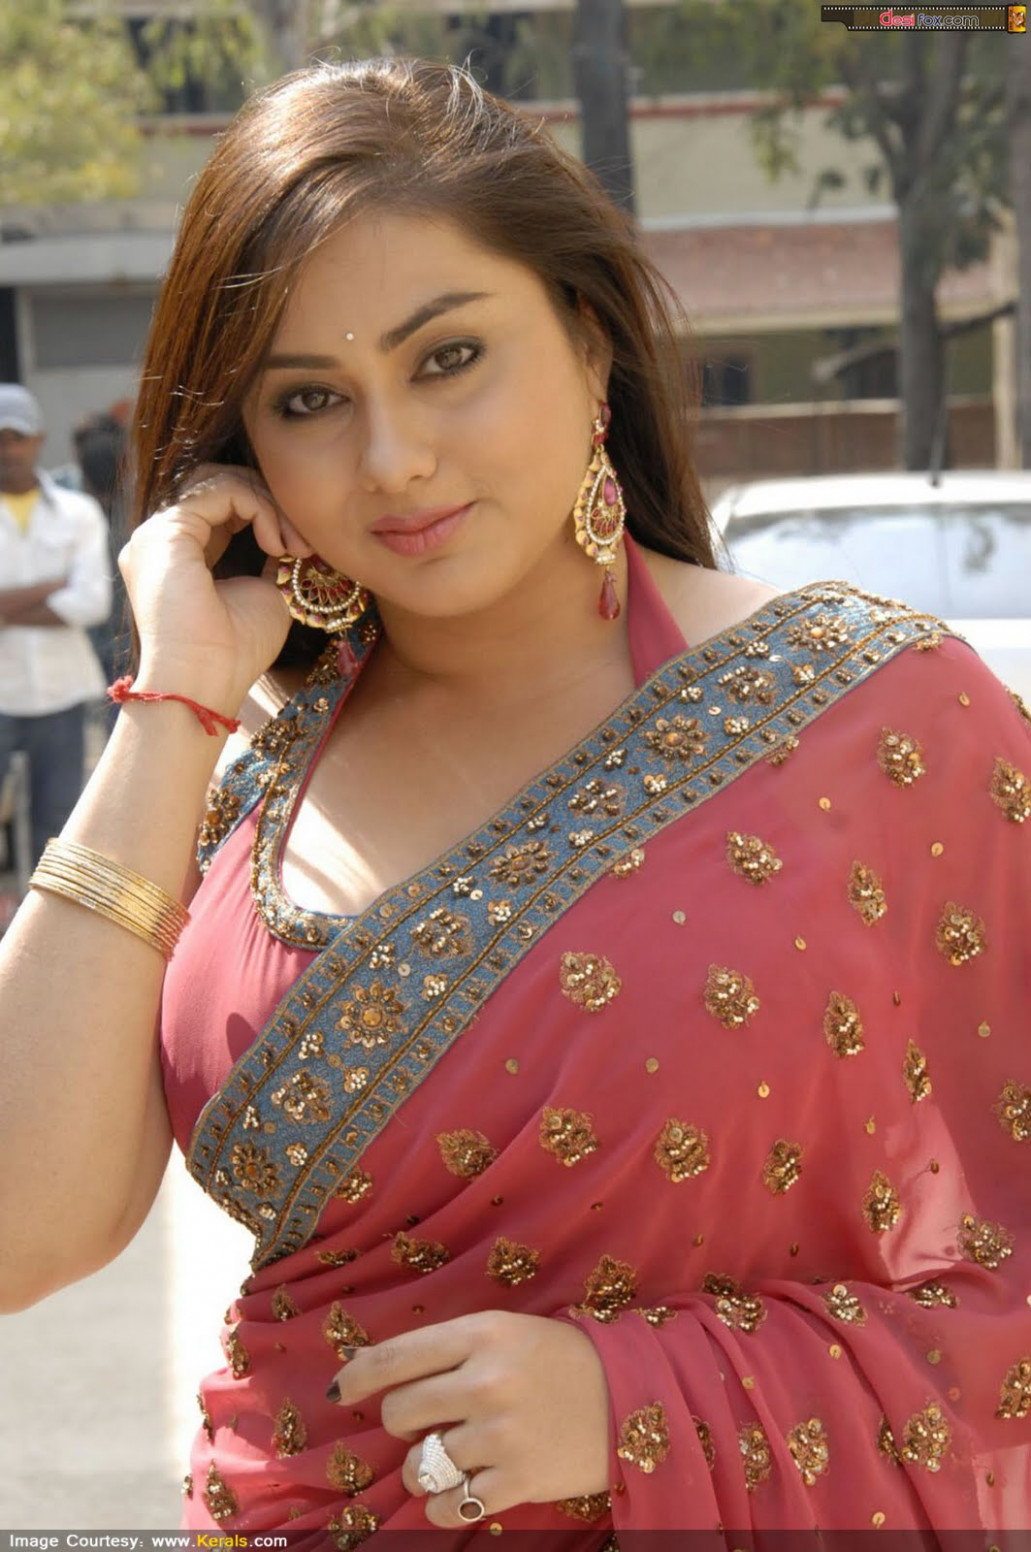 Malayalam Posters: Namitha in beautiful saree- huge boobs